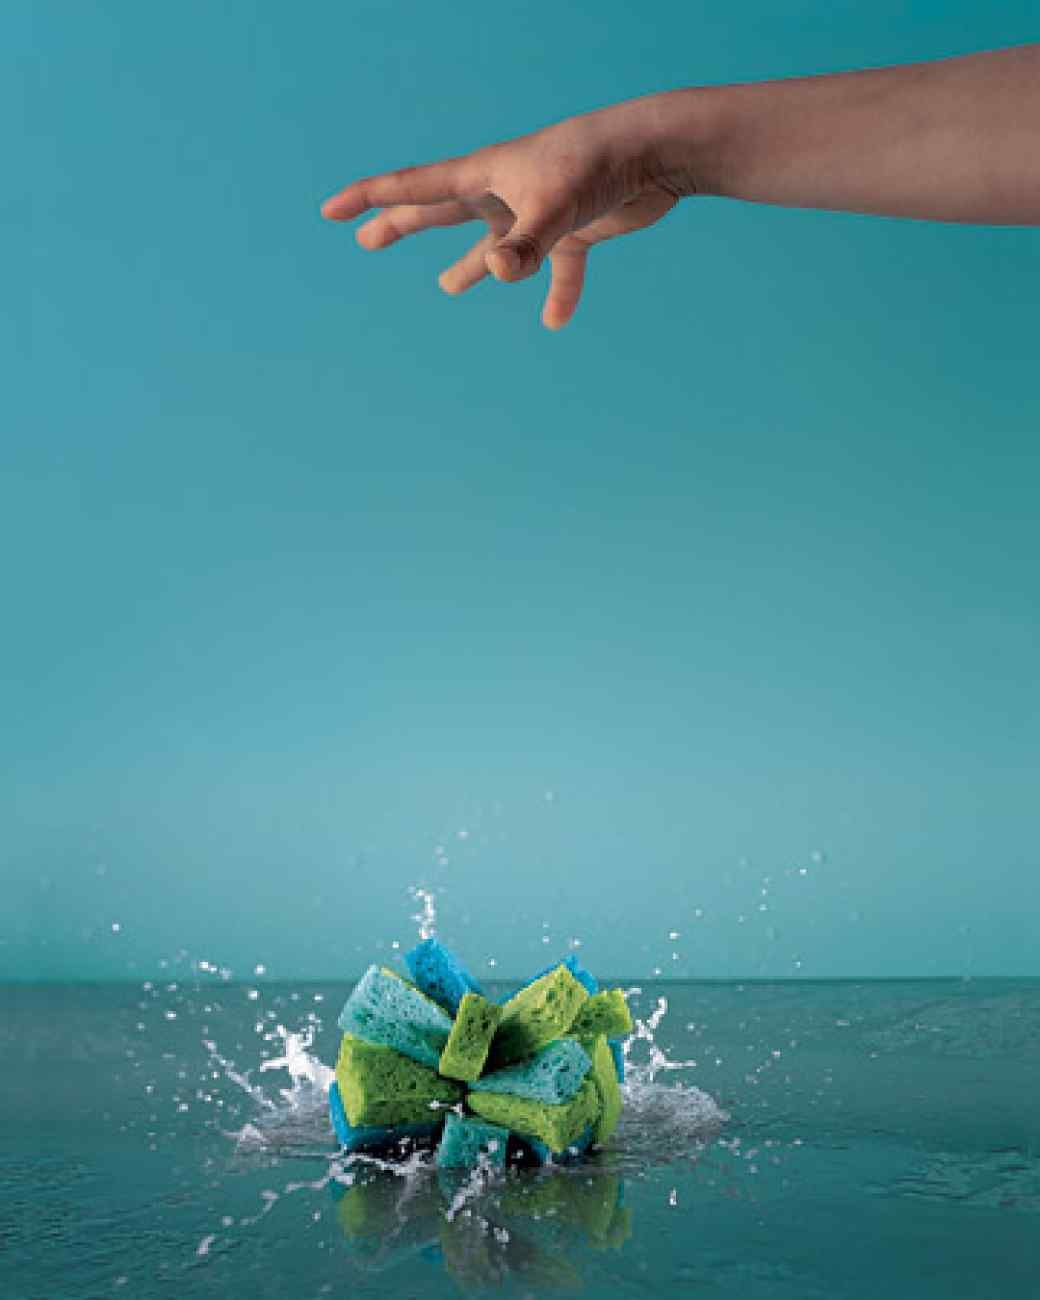 Sponge Ball - Easy to Make - Long Lasting - Better than a Water Balloon! • Play chase • Play Everyone is Gonna Get SPLAT!! • MAKE LOTS then Play Catch similar to an egg toss.